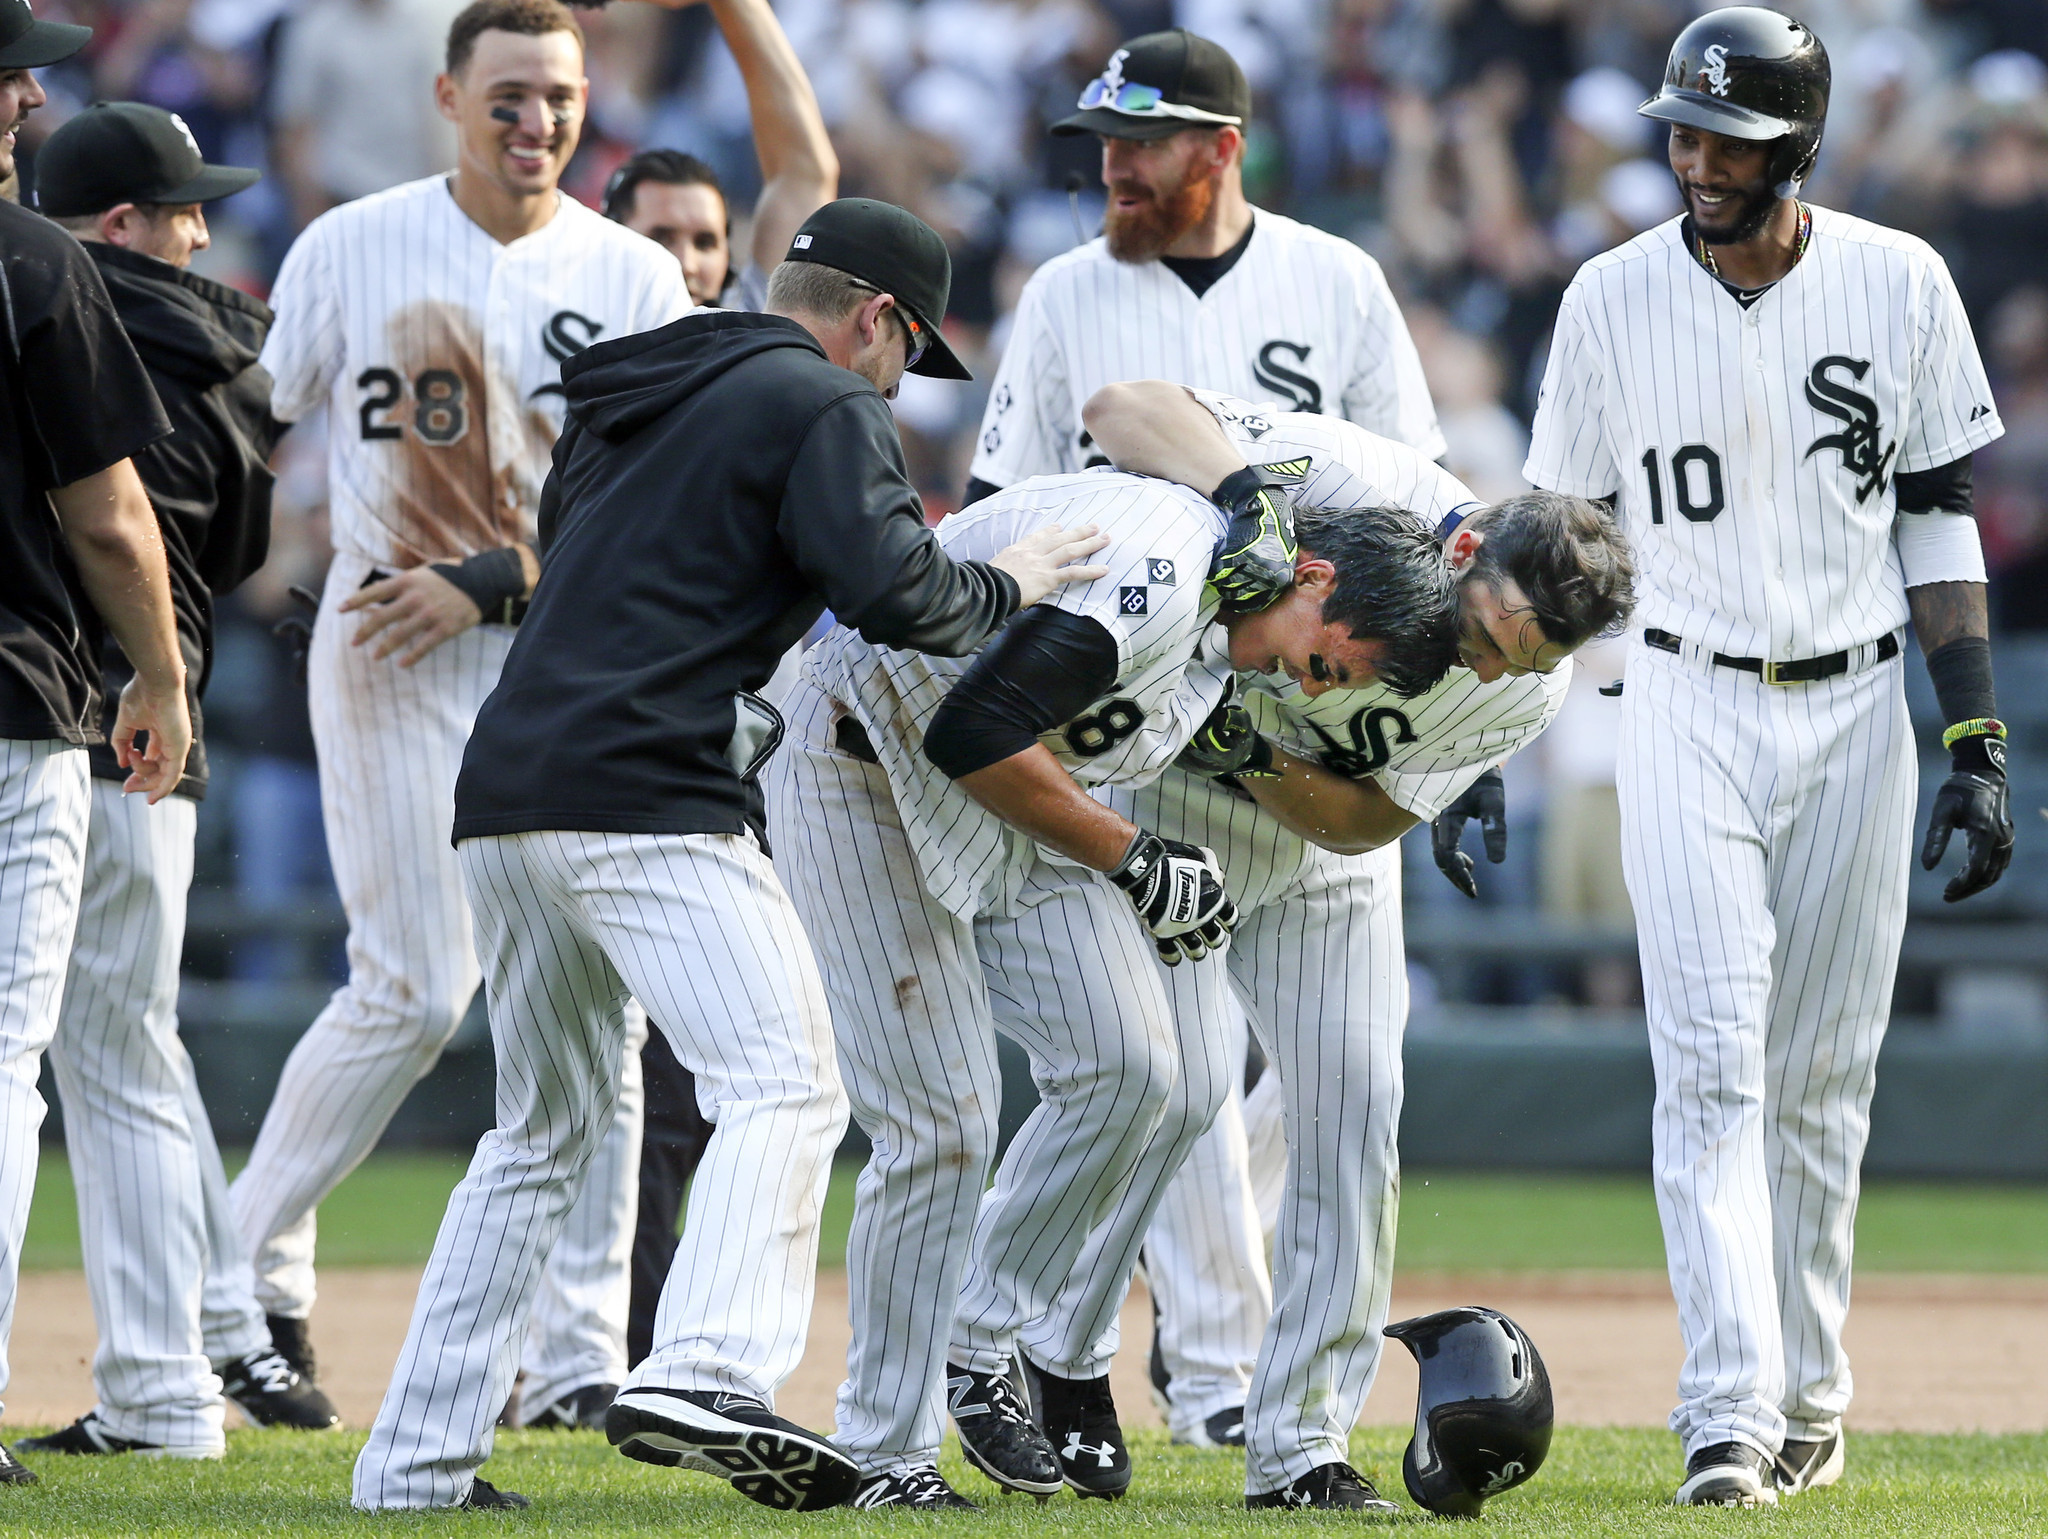 white sox 6 mariners 5 11 inn baseball chicago